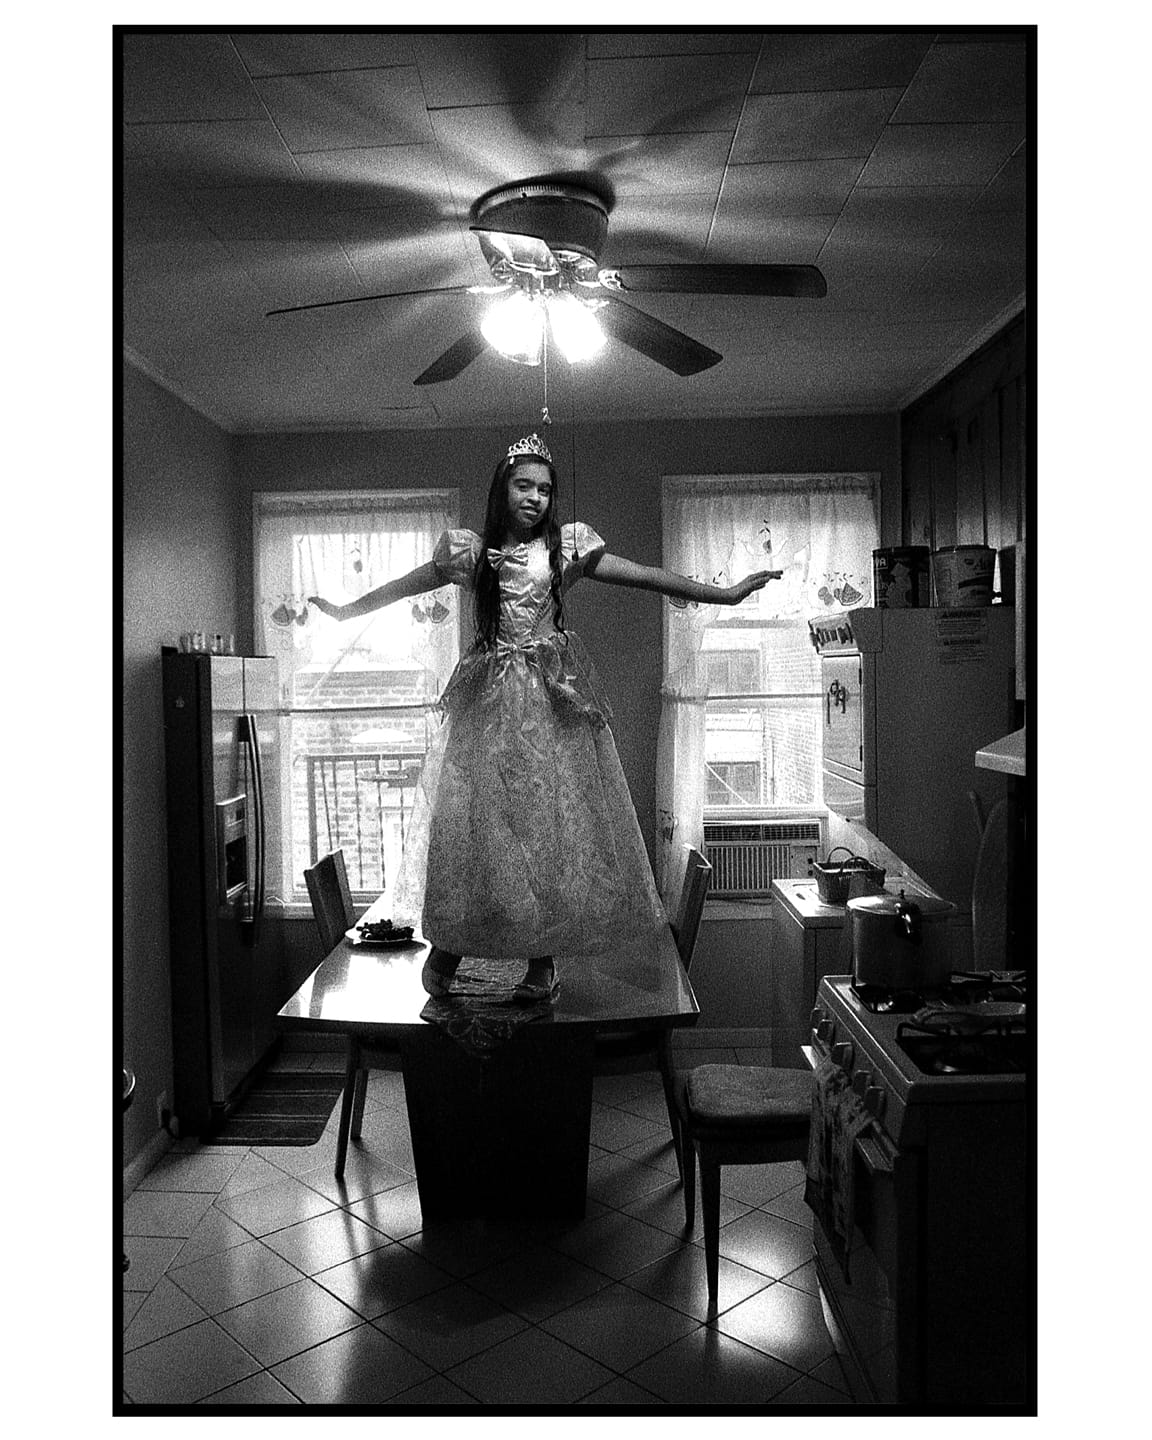 A portrait of my daughter, Alicia. She is posing on top of her grandmother's kitchen table, dressed in her Halloween costume.